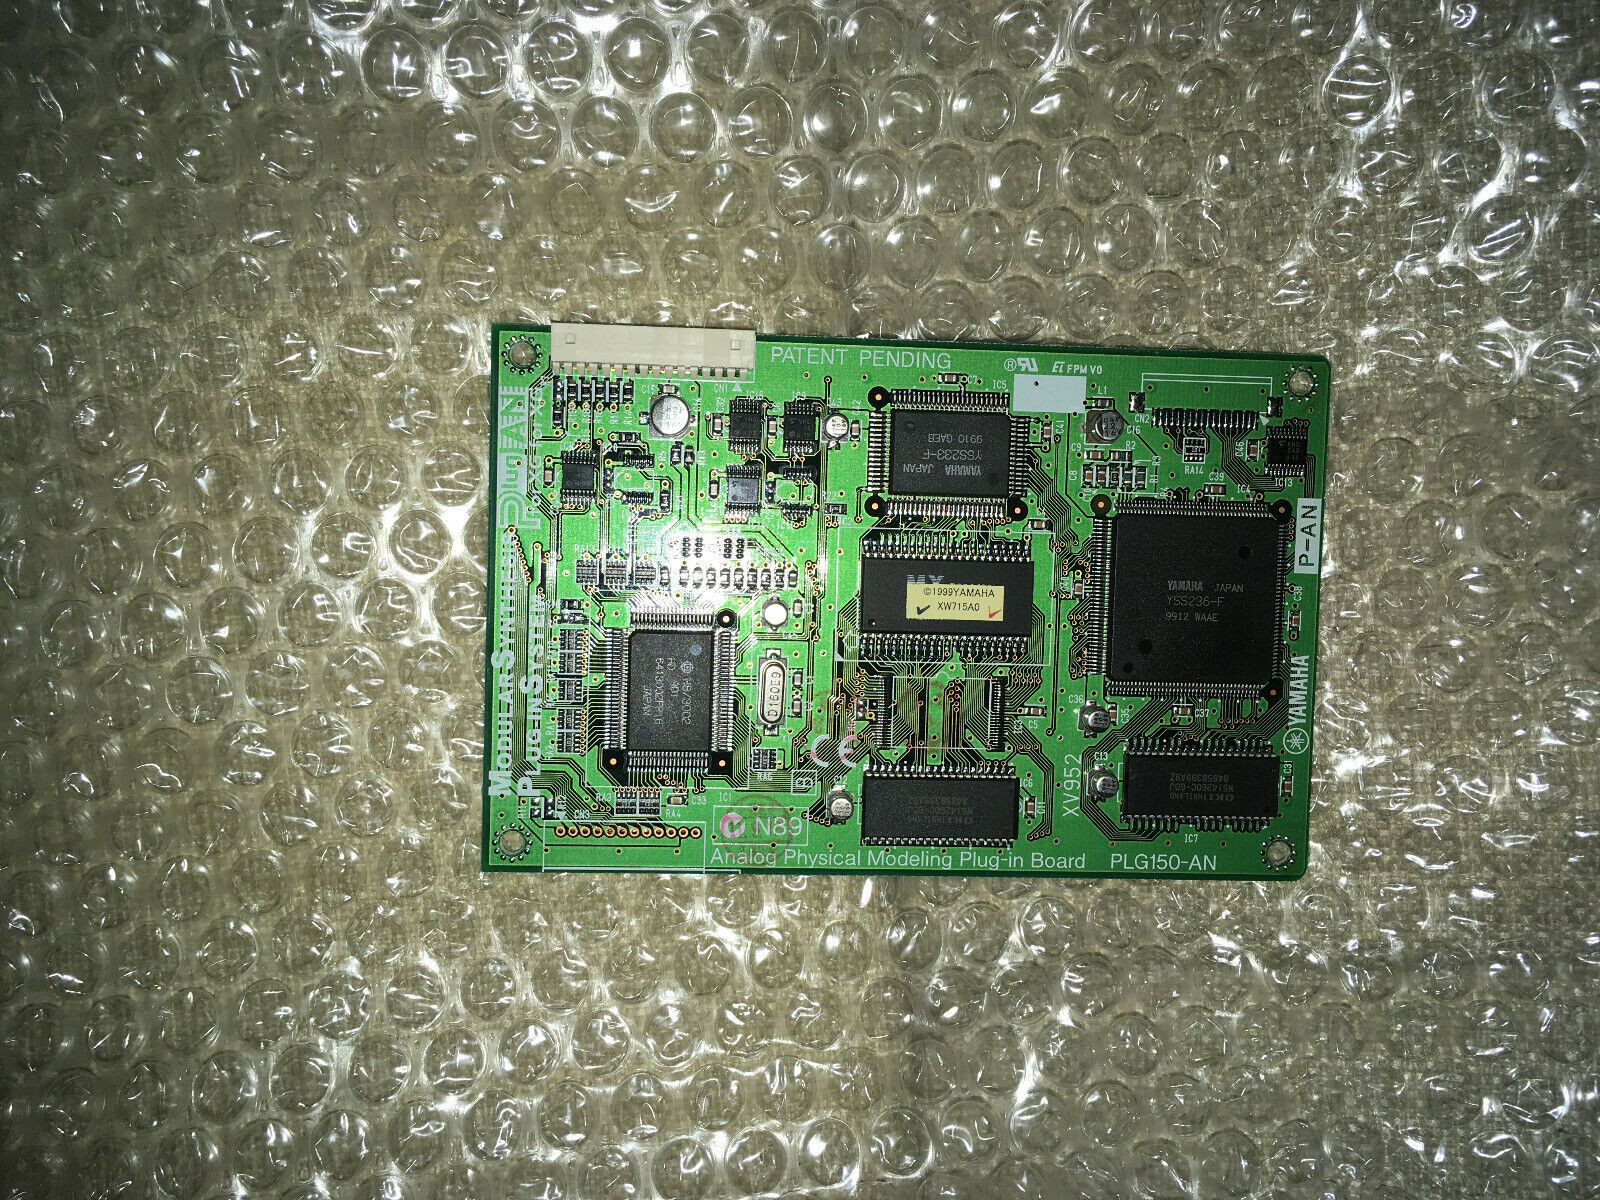 Yamaha plg150an plug in board  virtual physical modelling